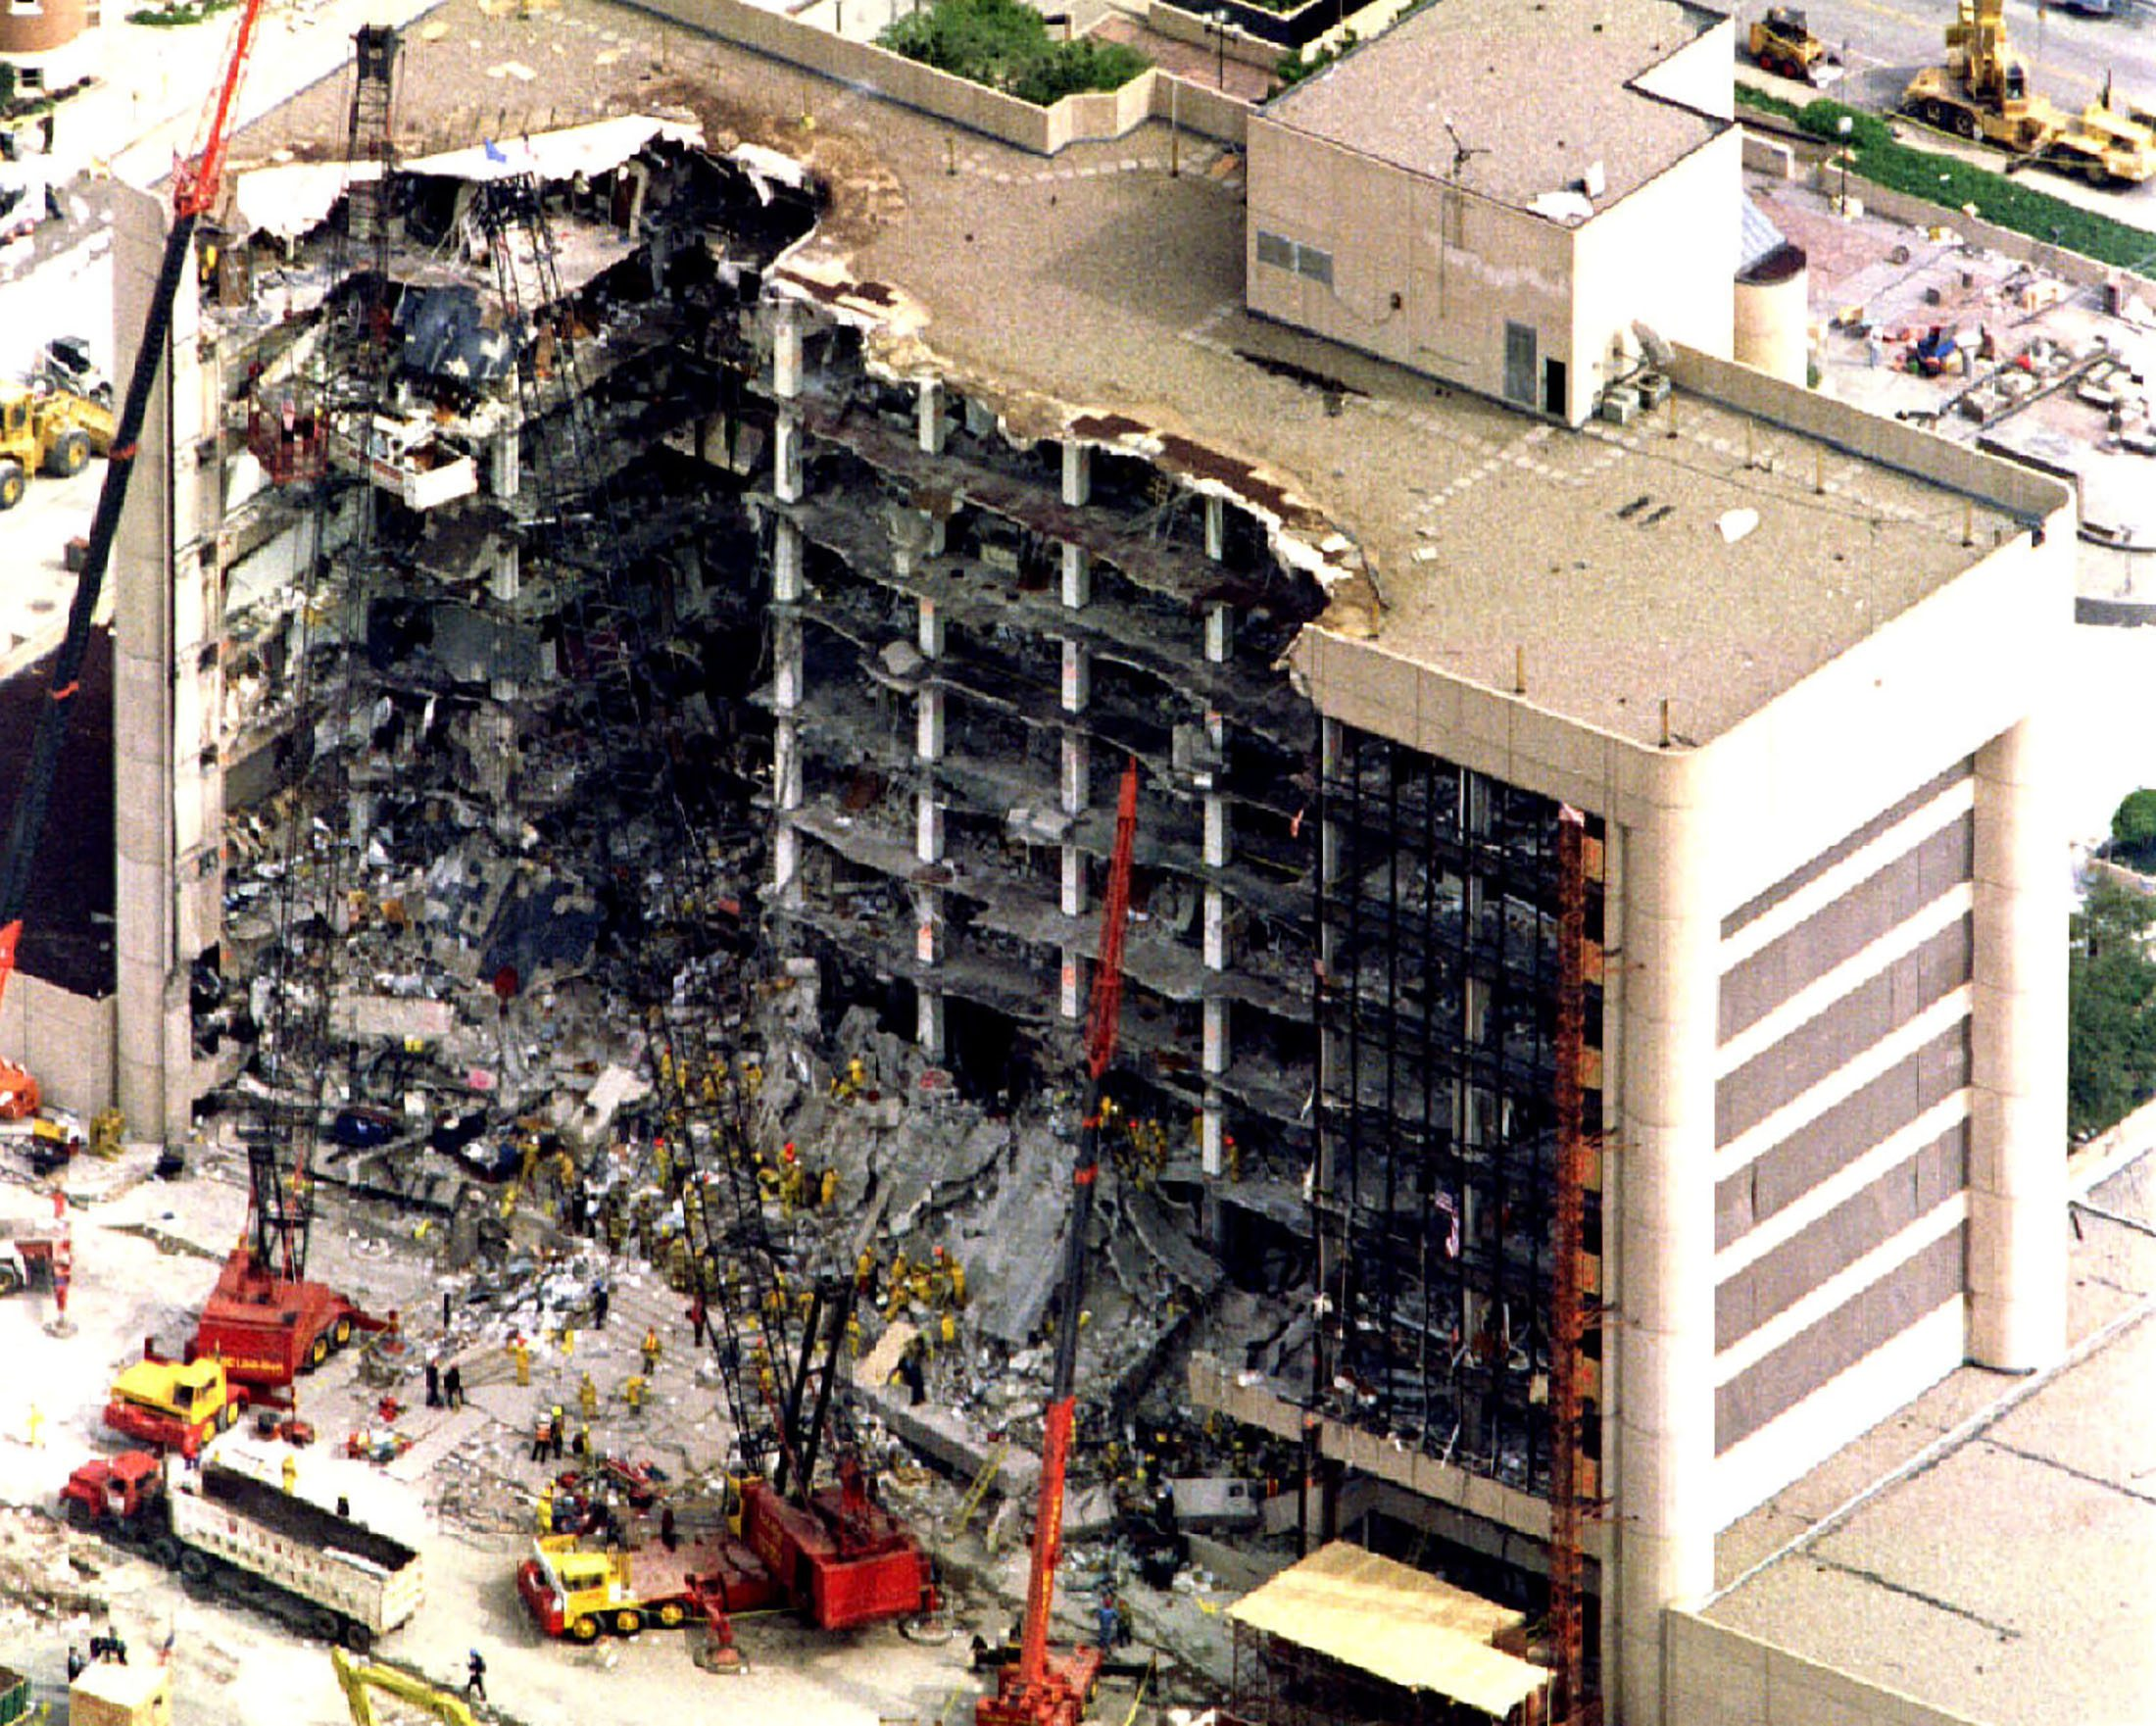 okc murrah building bombing 1995 oklahoma city bombing,murrah building,parallels,elgin blast effects study,investigation,charles key.